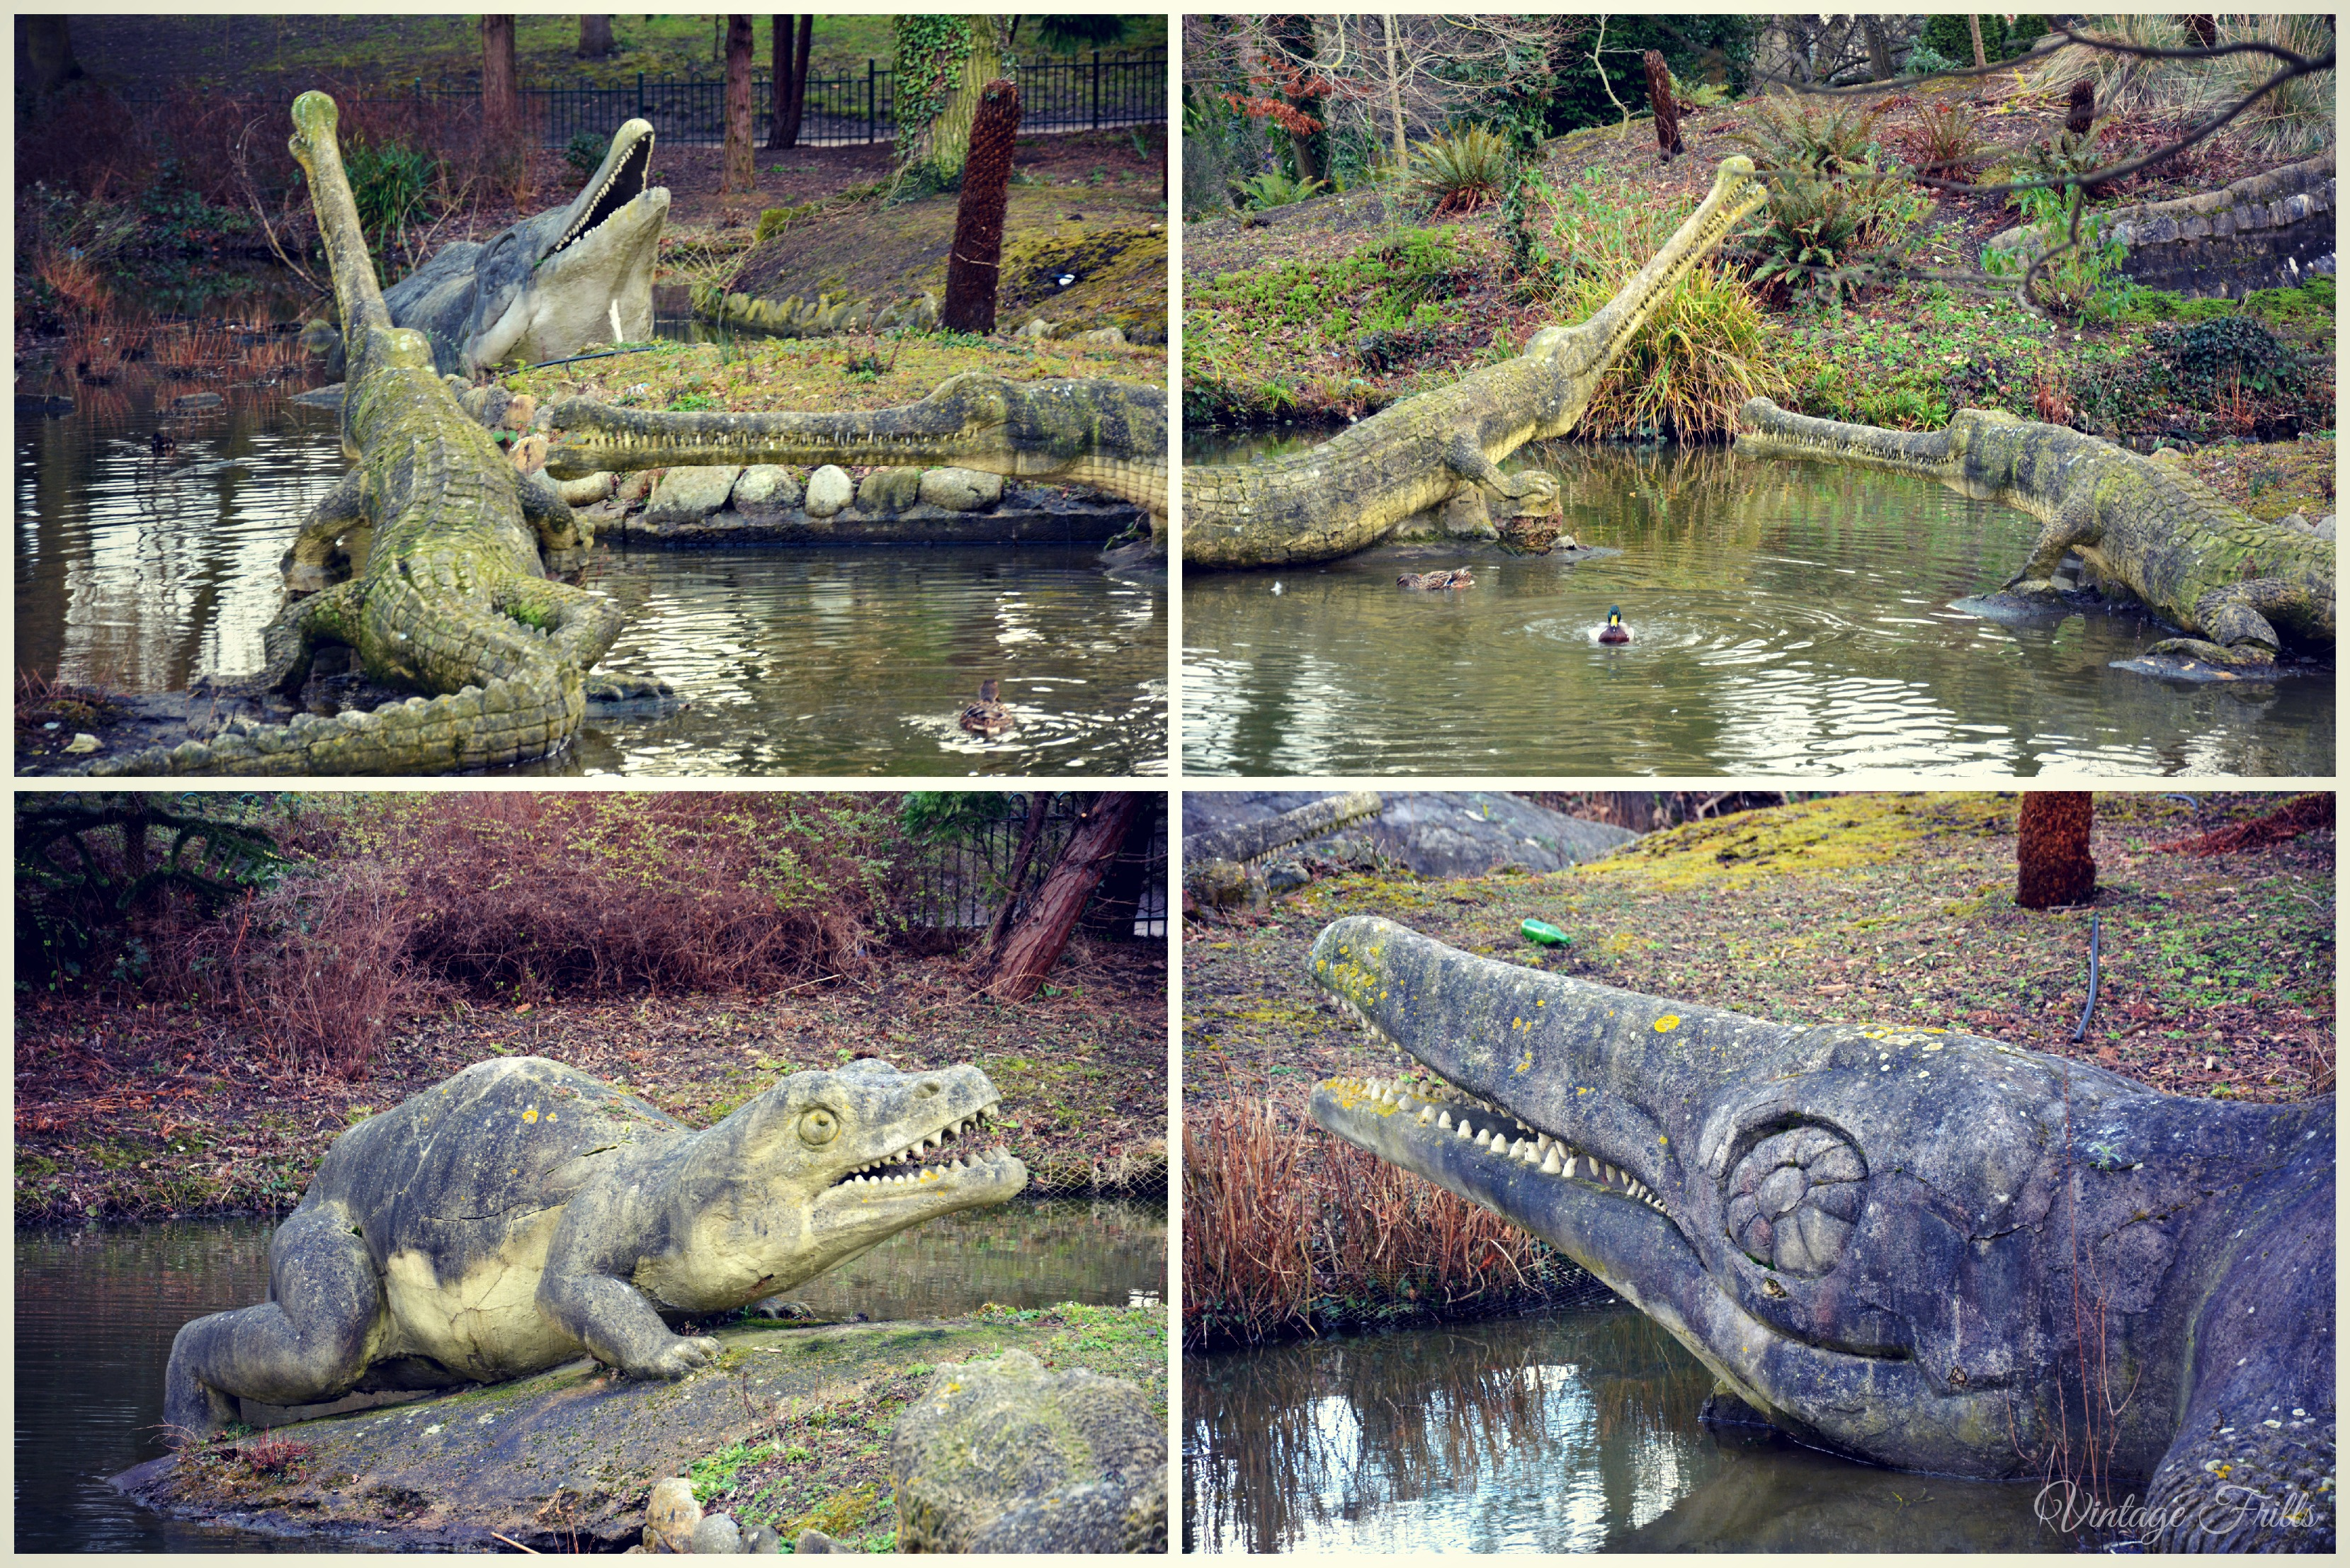 Crystal Palace Park Water Dinosaurs